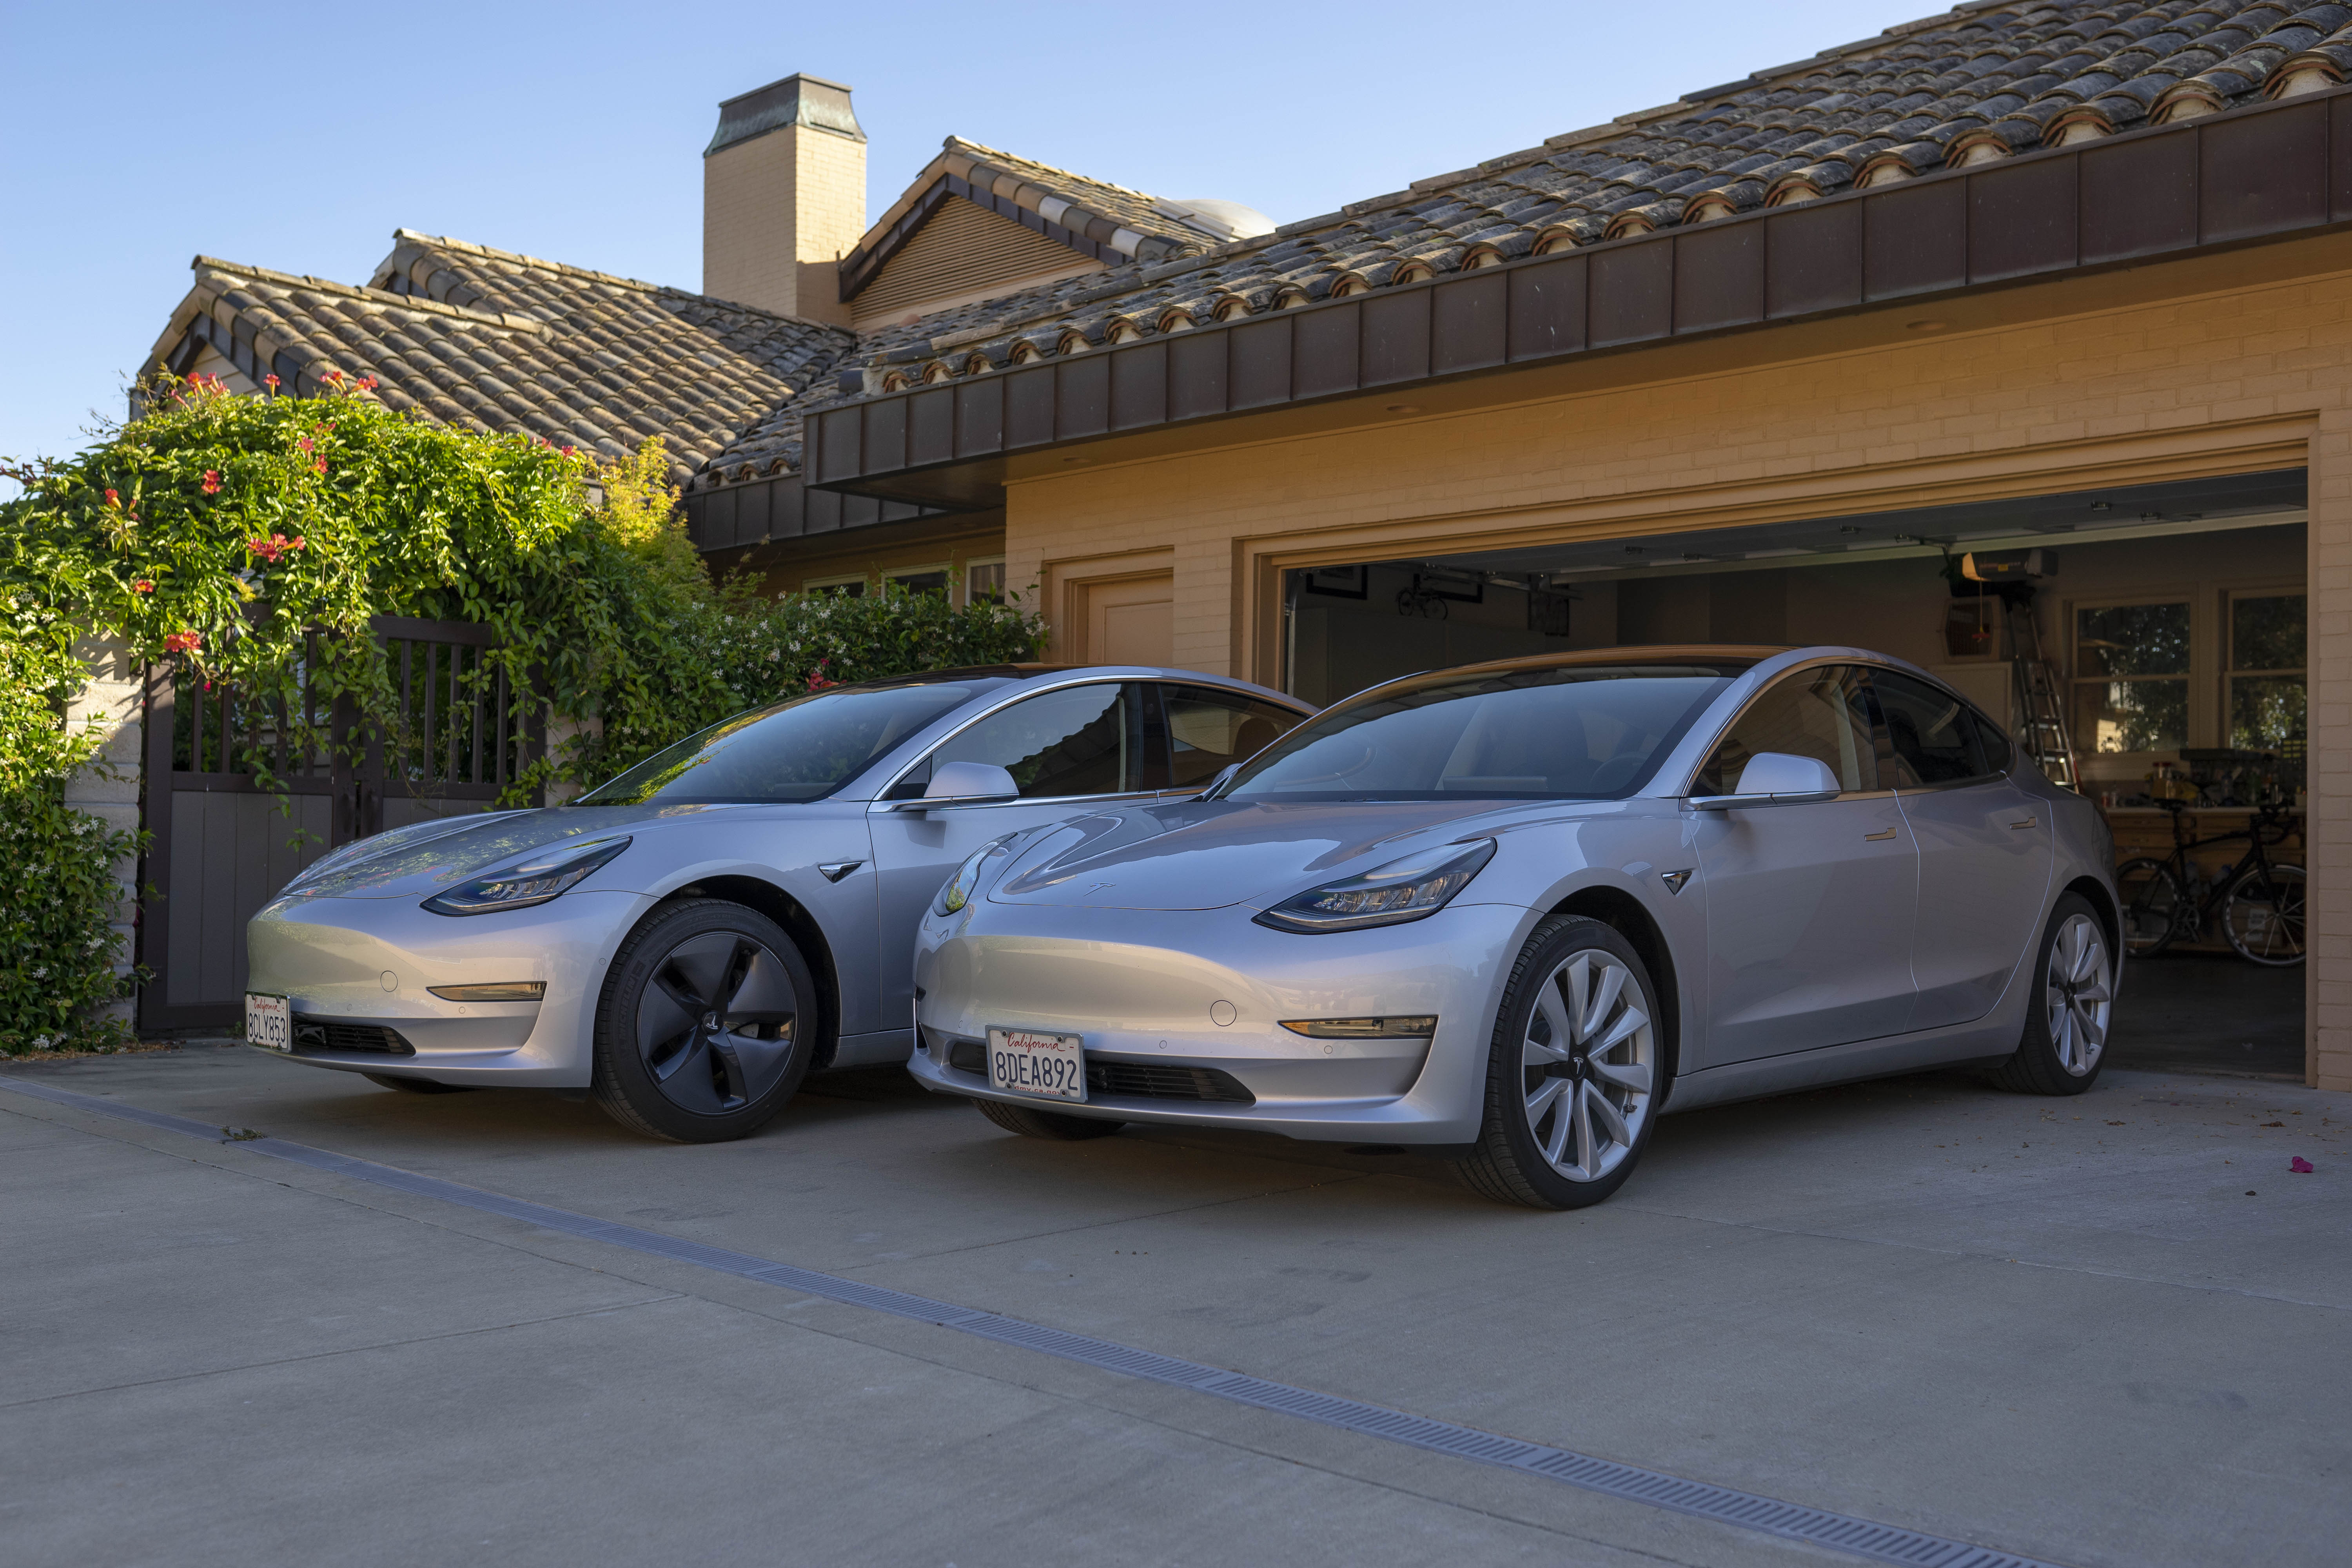 Charging Two Teslas At Home With Your Mobile Connectors